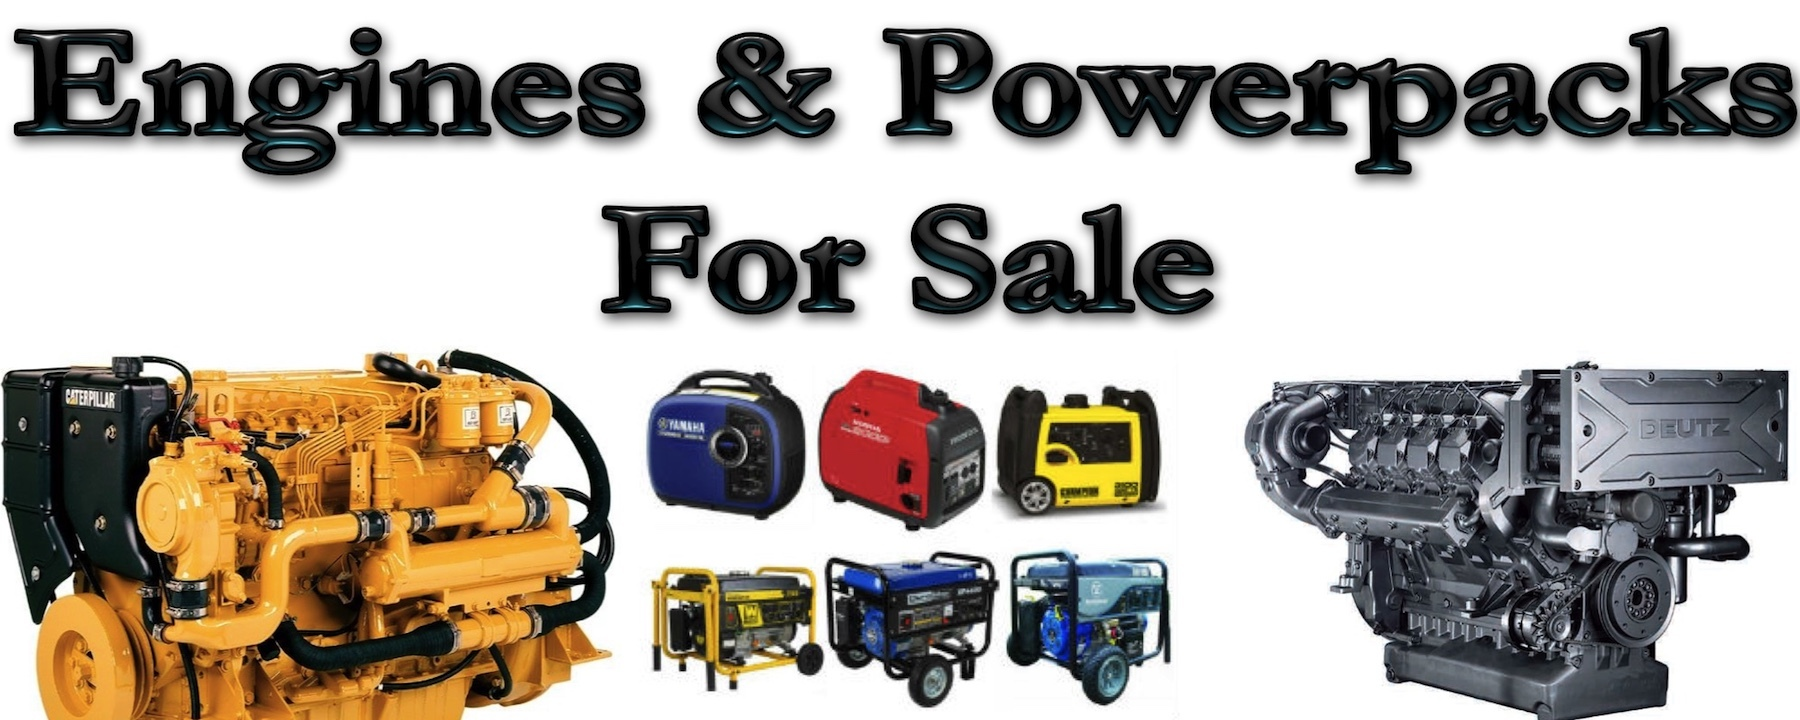 engines_and_powerpacks_for_sale_